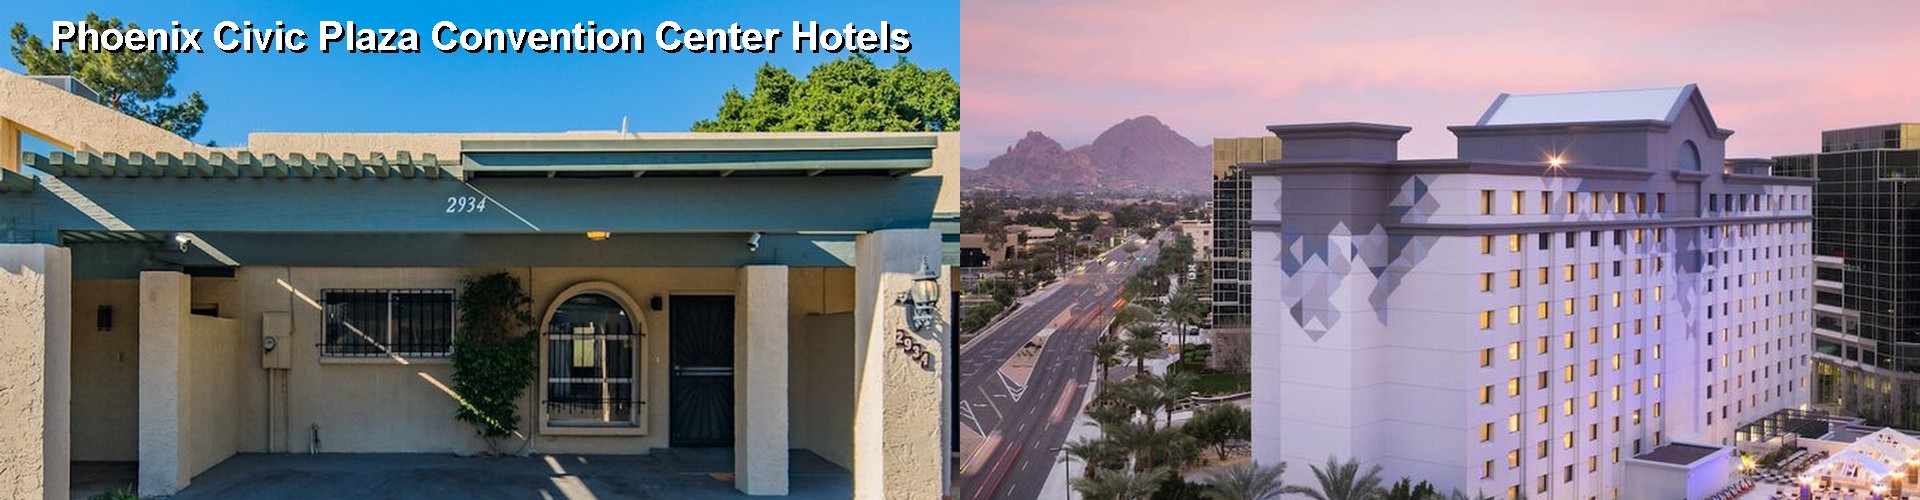 5 Best Hotels near Phoenix Civic Plaza Convention Center